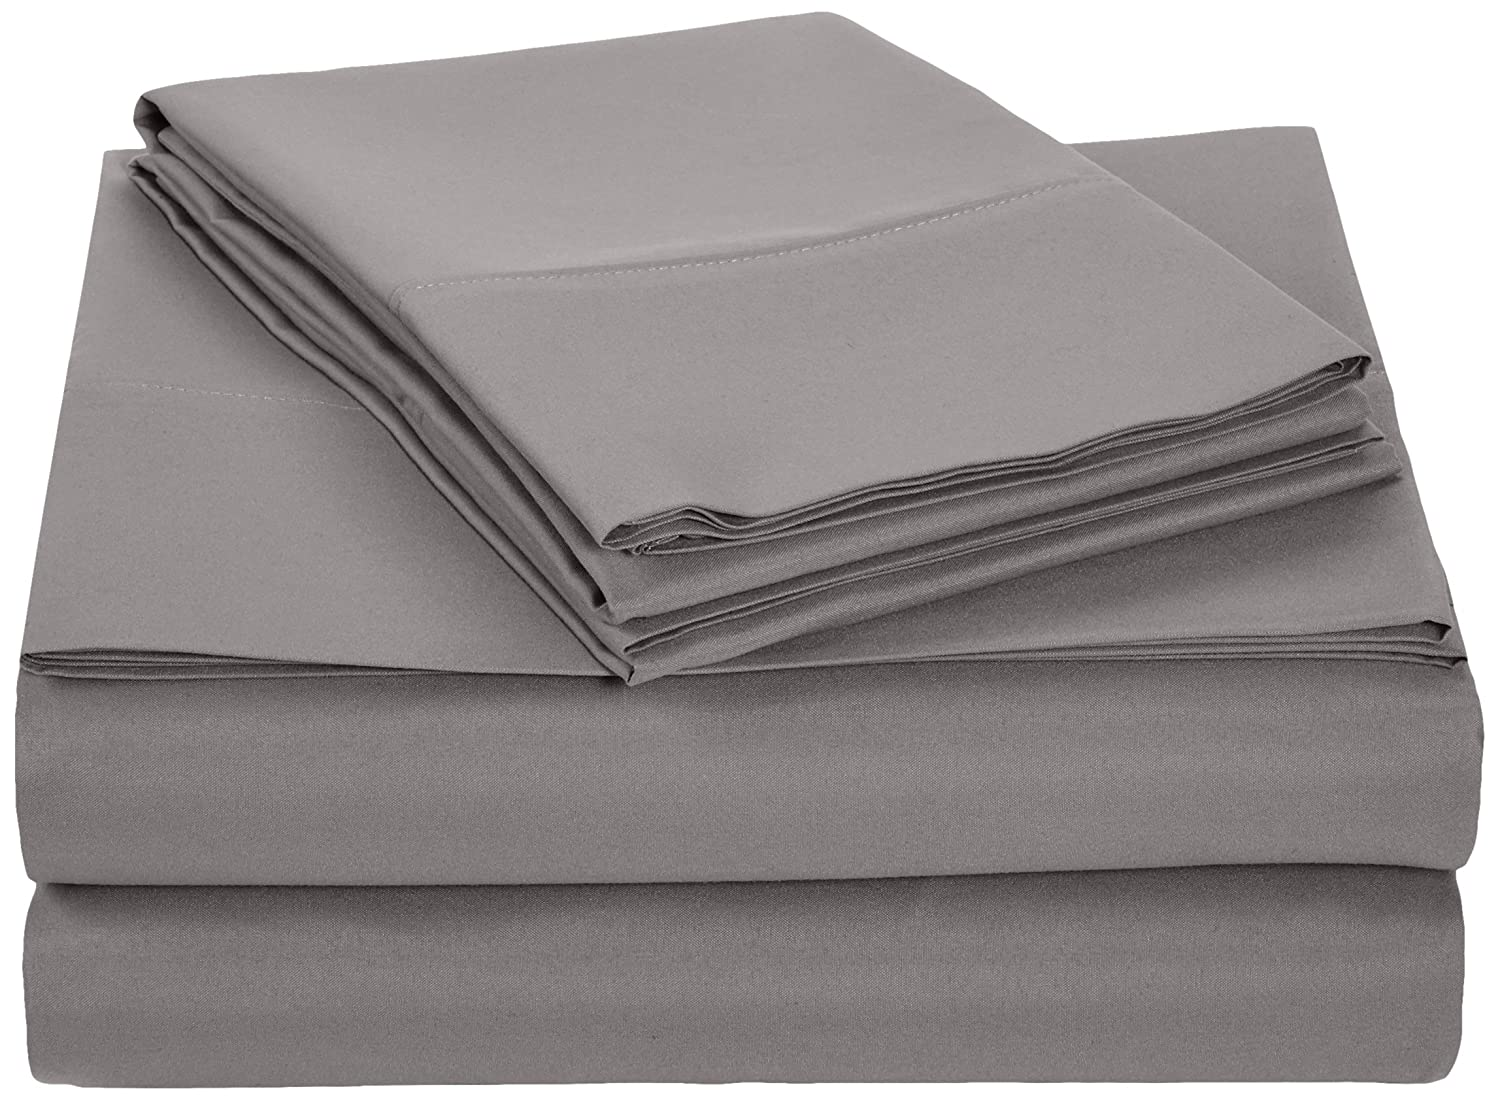 AmazonBasics Microfiber Sheet Set - Full, Dark Grey